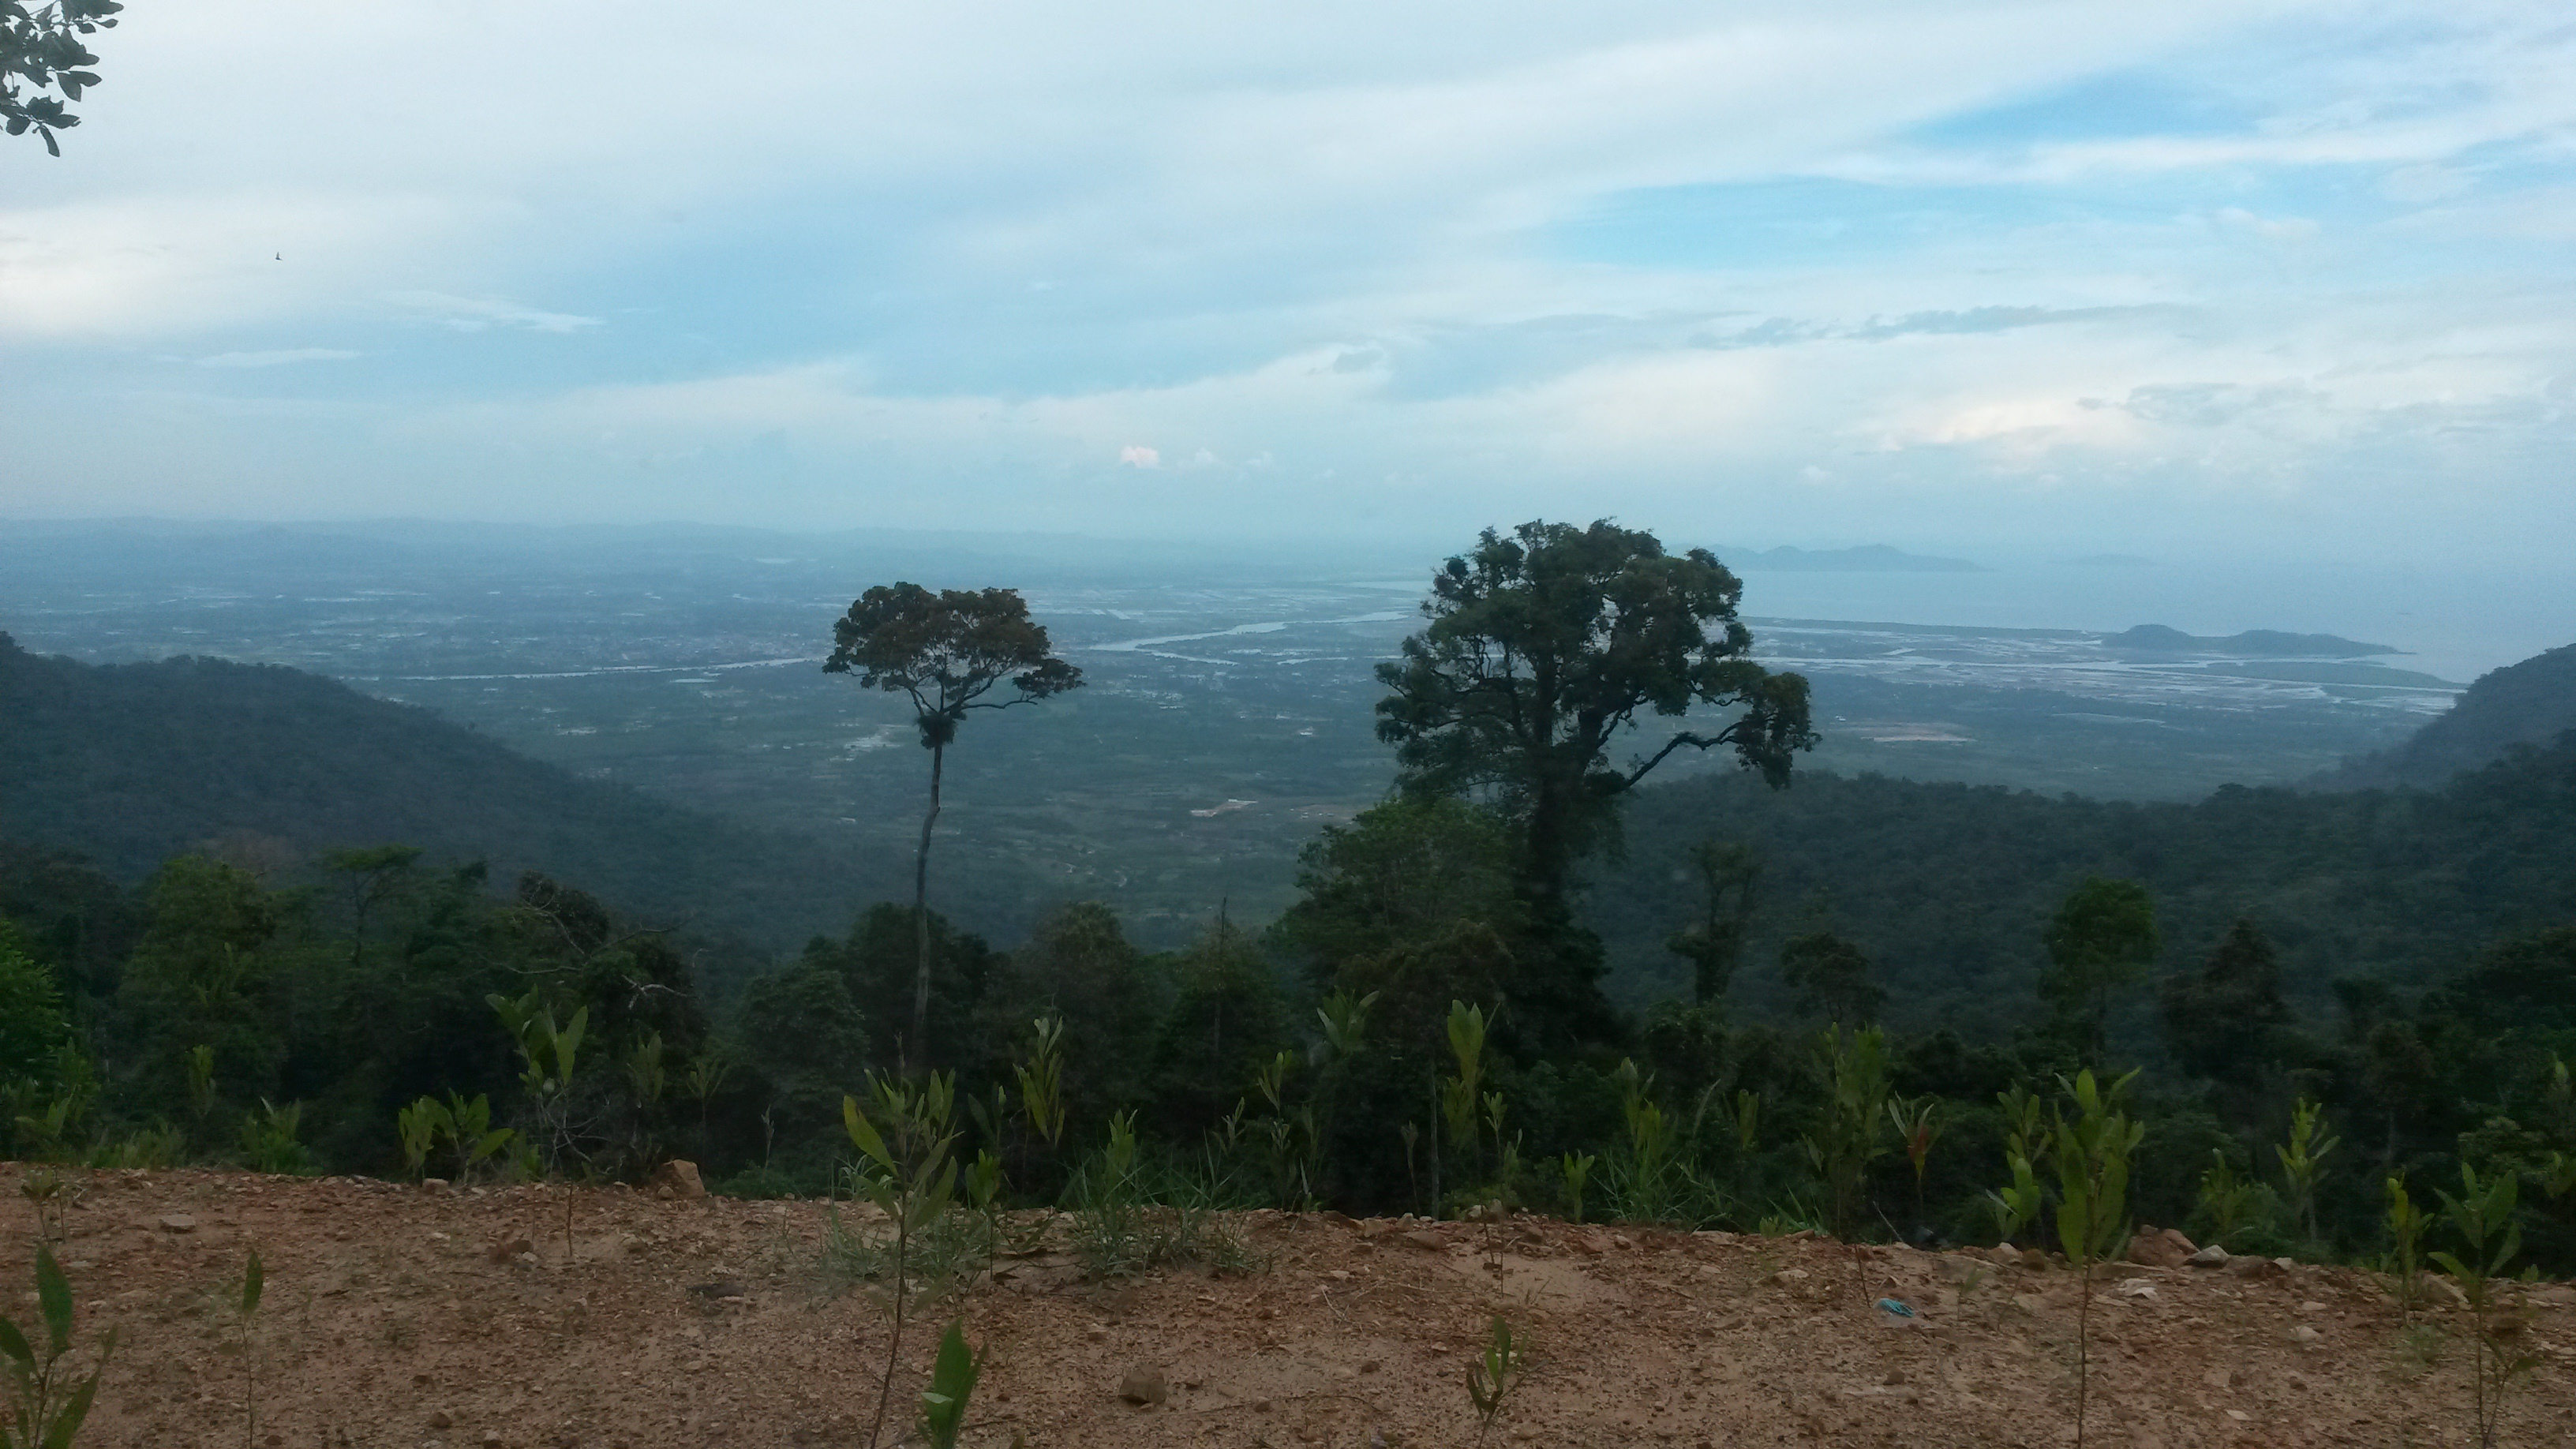 View from the top of Bokor Mountain, Cambodia